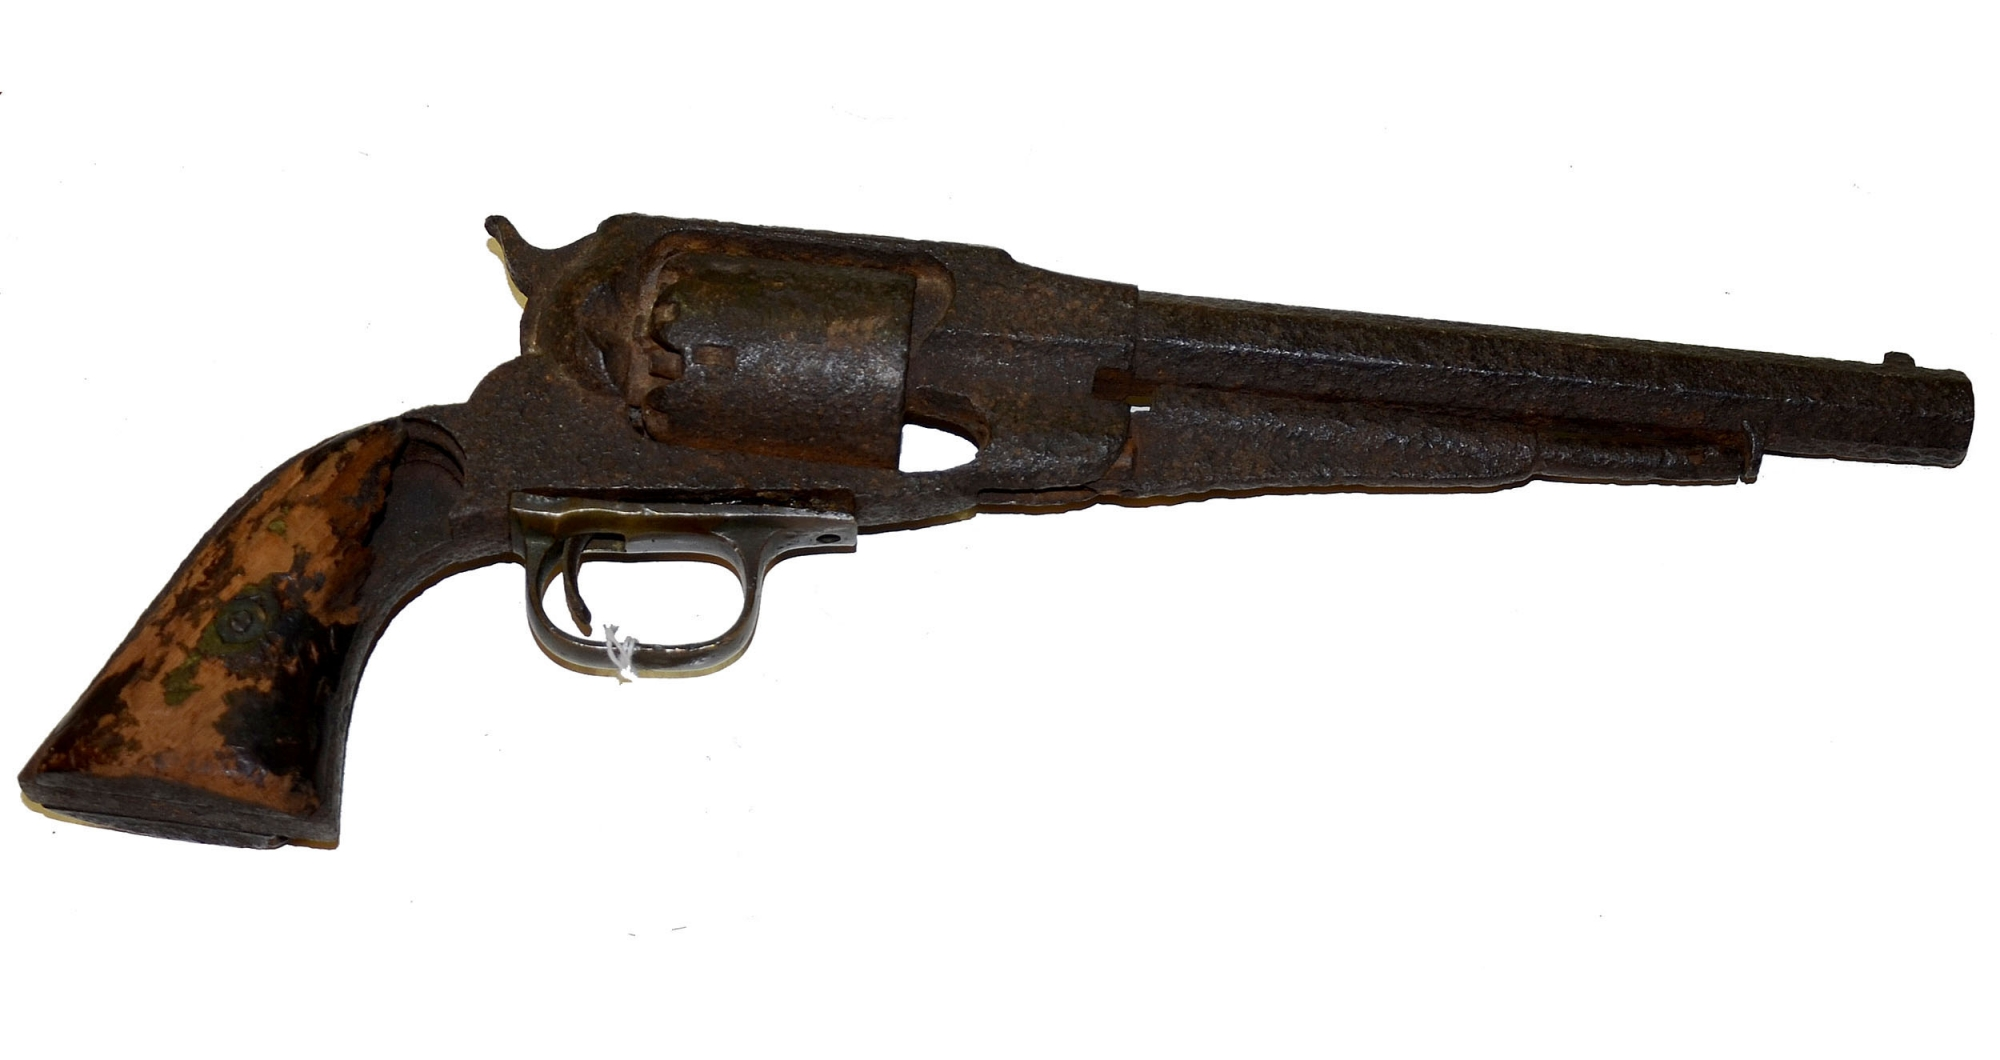 LOADED RELIC REMINGTON REVOLVER RECOVERED AT COLD HARBOR